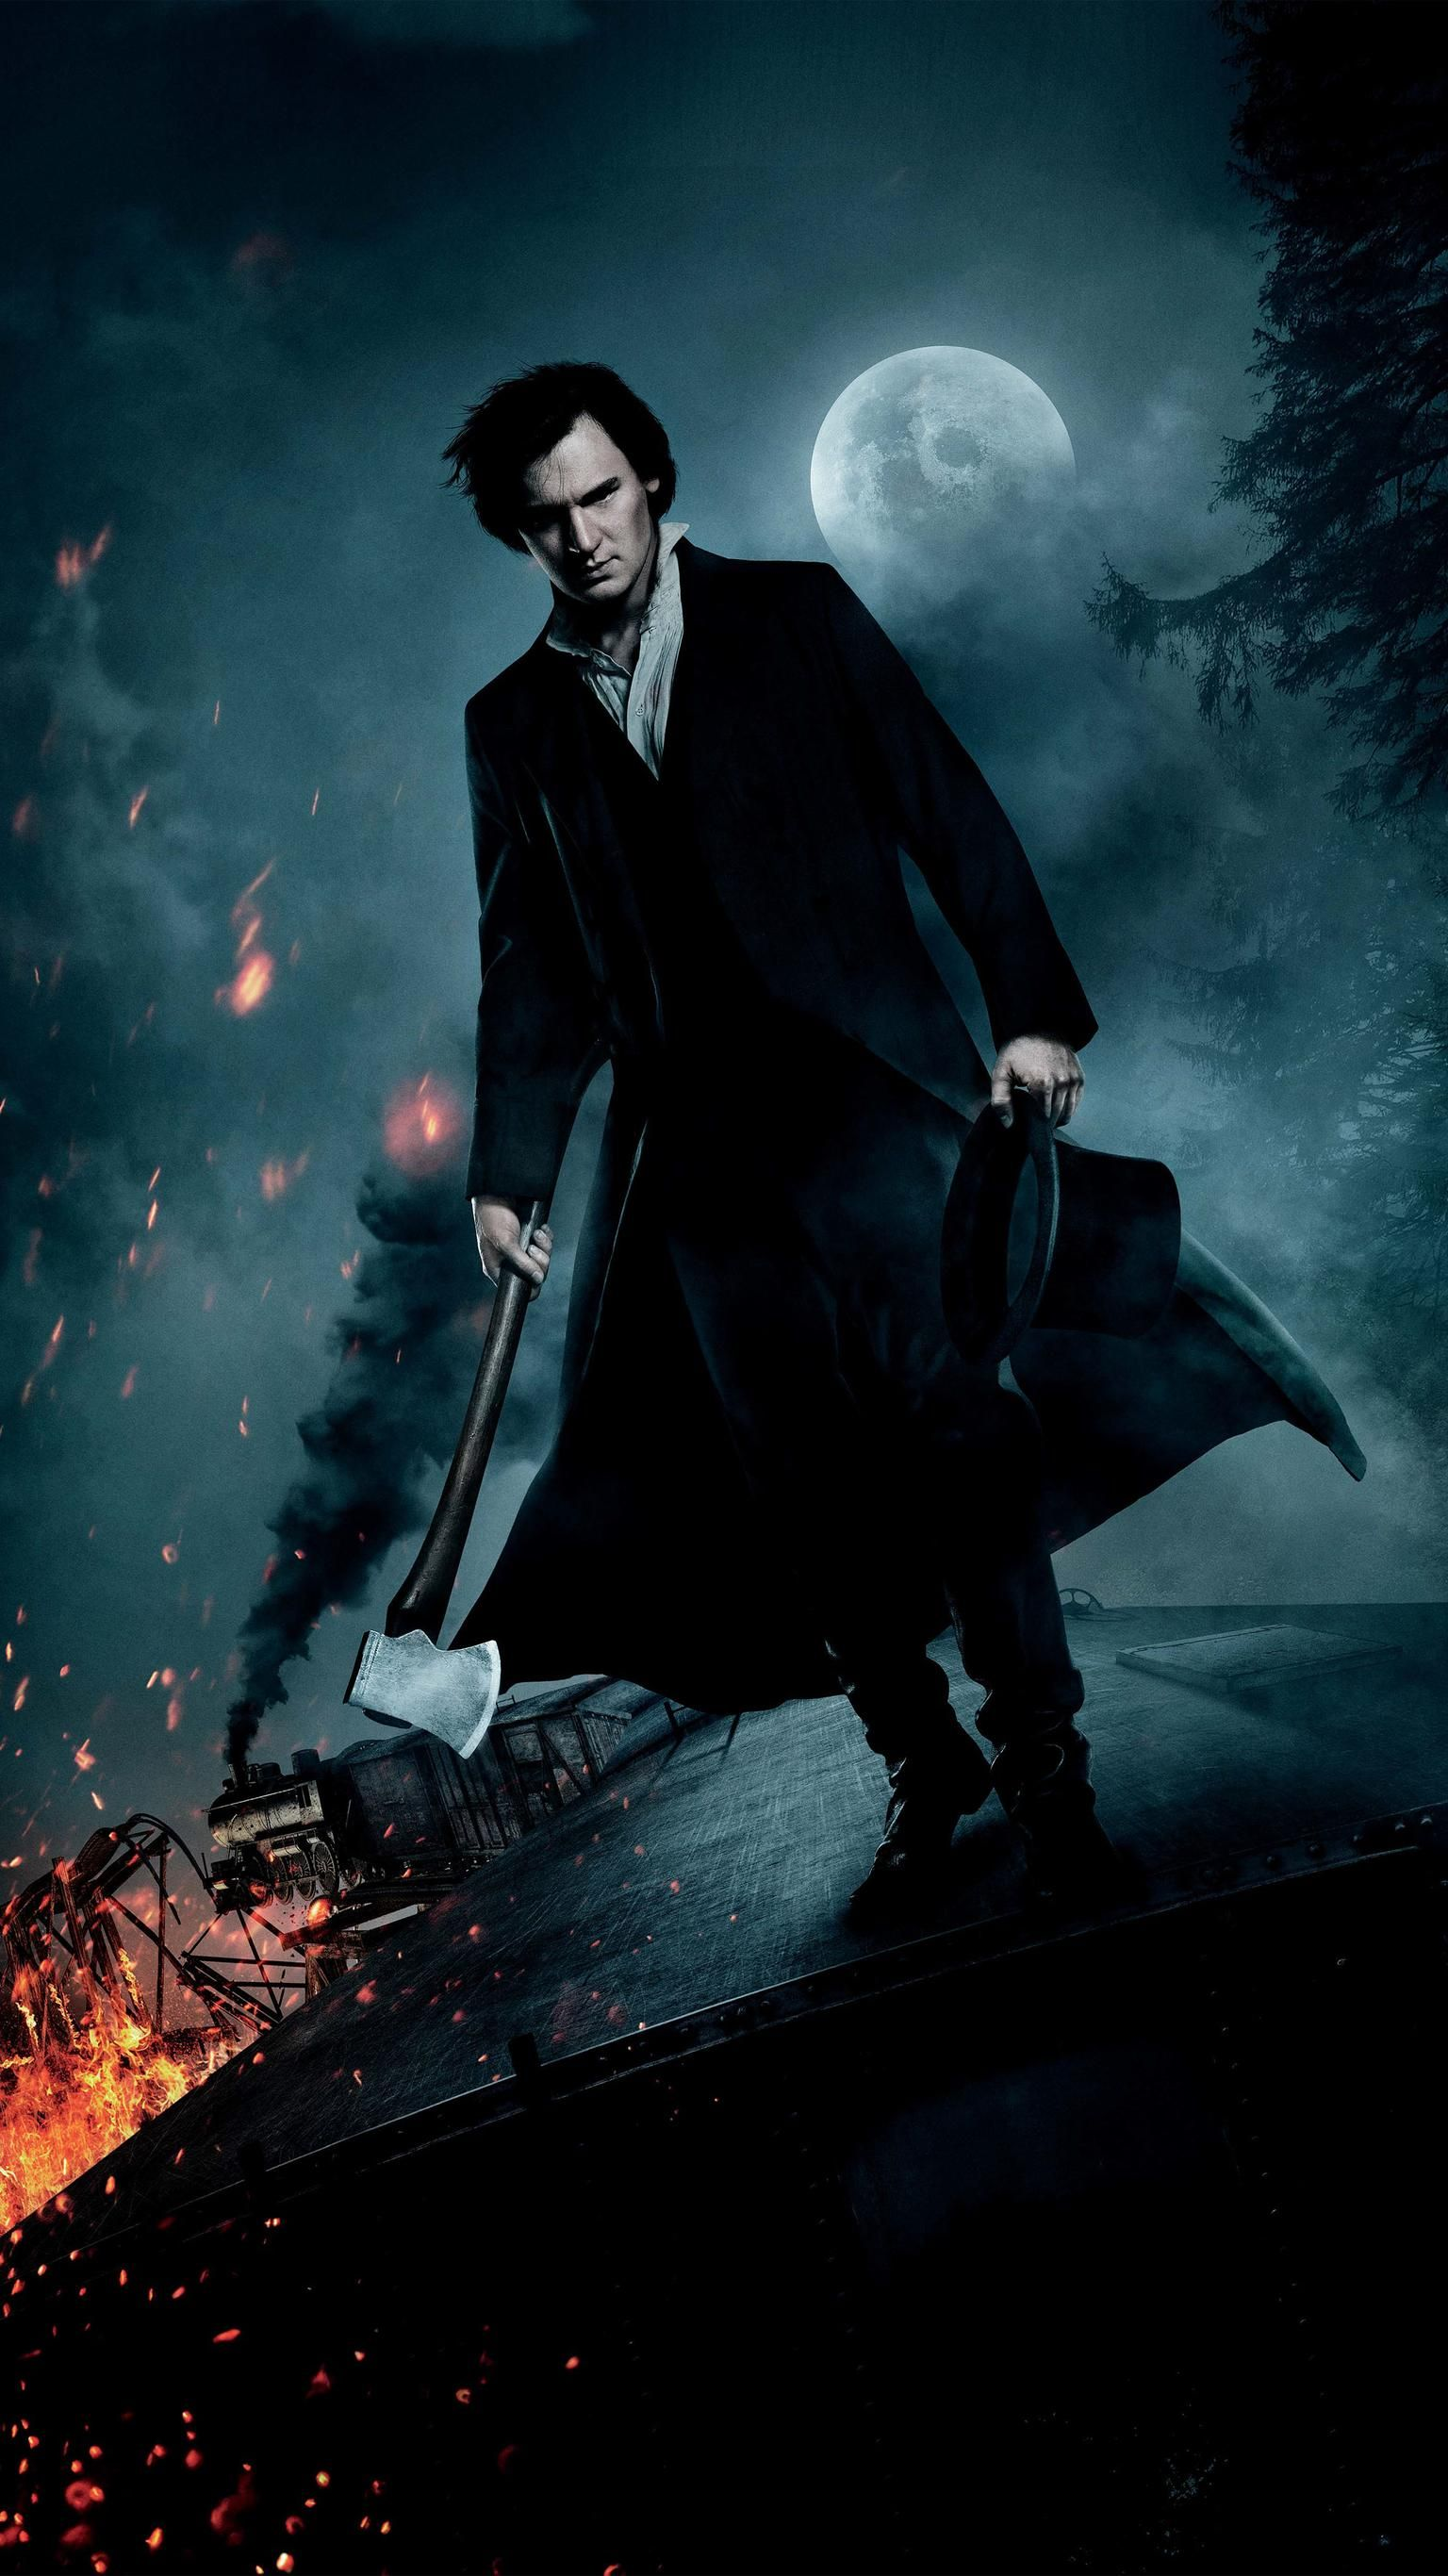 Abraham Lincoln Vampire Hunter 2012 Phone Wallpaper Moviemania Vampire Hunter Abraham Lincoln Vampire Hunter Vampire